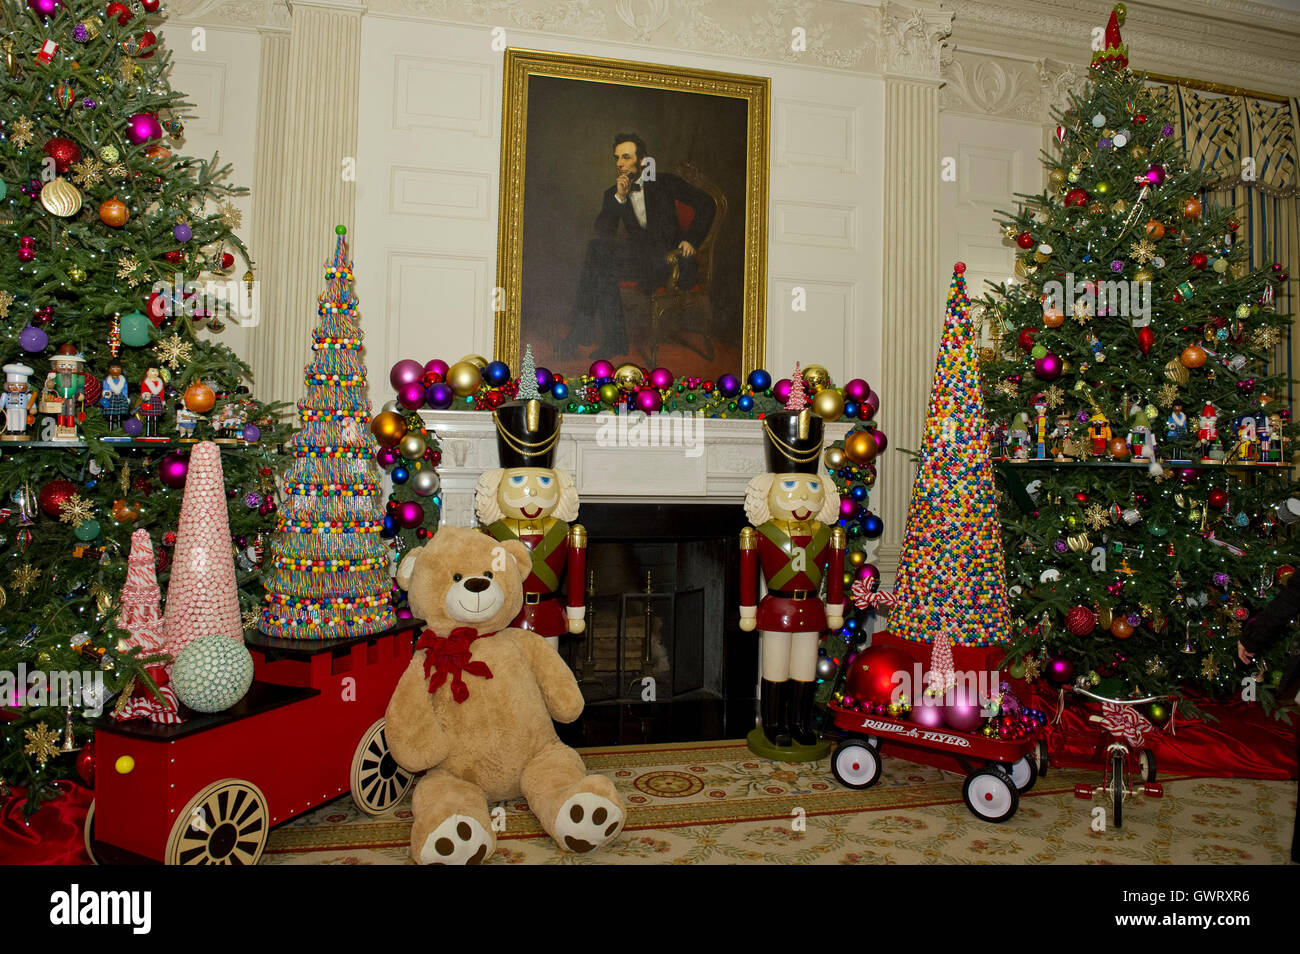 Decorations in the state dining room surround the portrait of former decorations in the state dining room surround the portrait of former united states president abraham lincoln on the state floor as part of the 2015 white dzzzfo